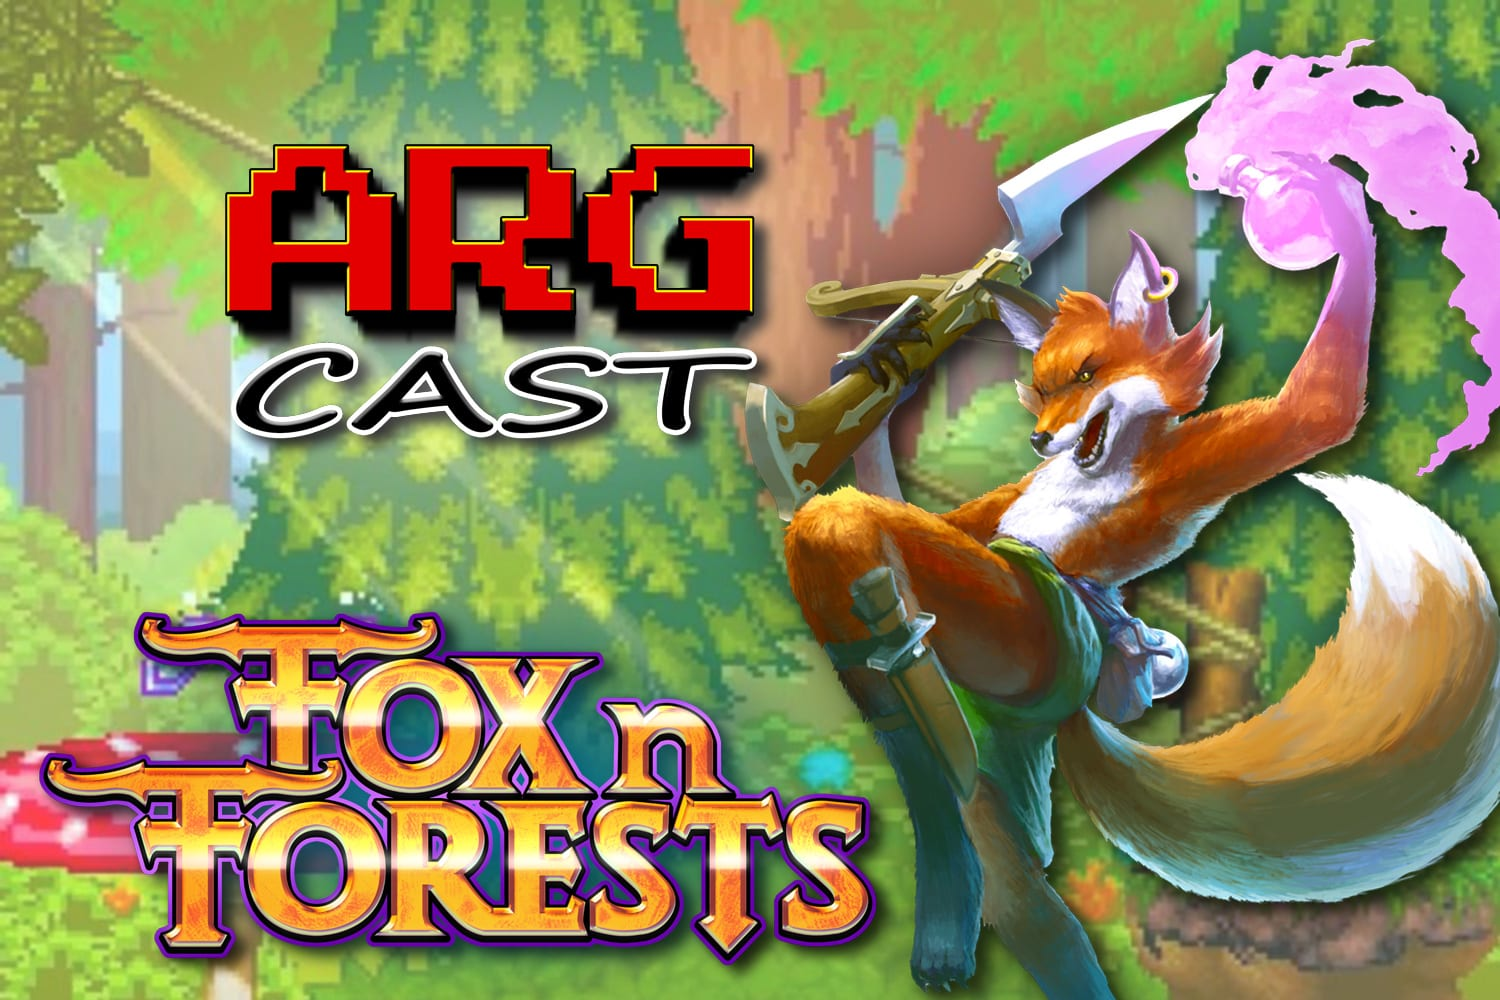 ARGcast Mini #13: Fox n Forests with Rupert Ochsner